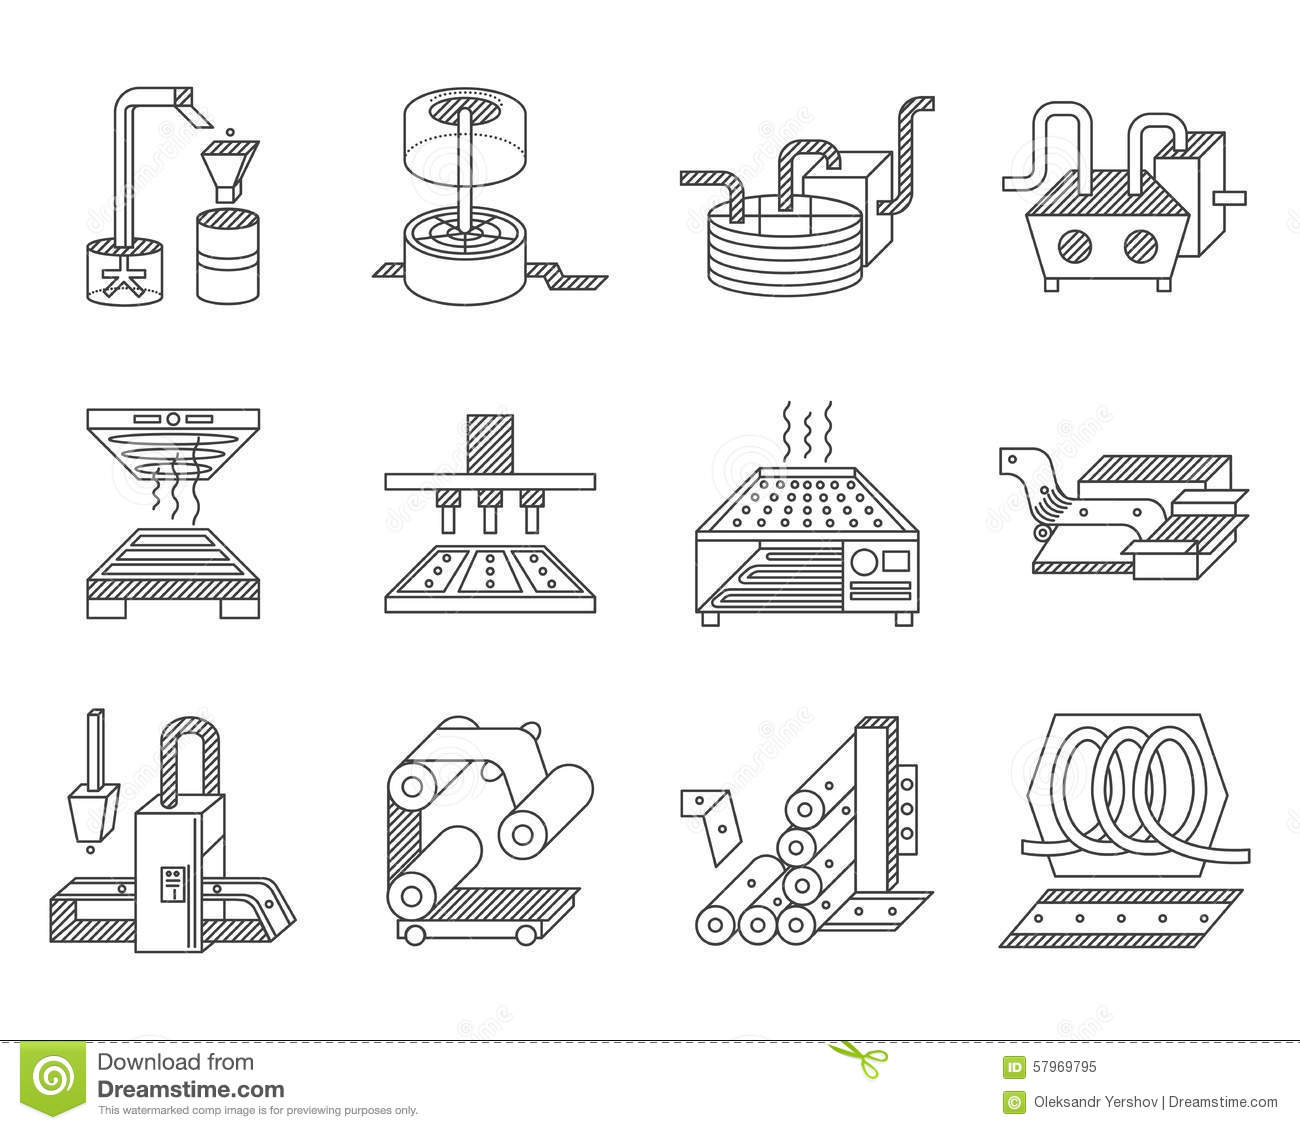 Drawing Lines In Processing : Icons for food processing industry stock illustration